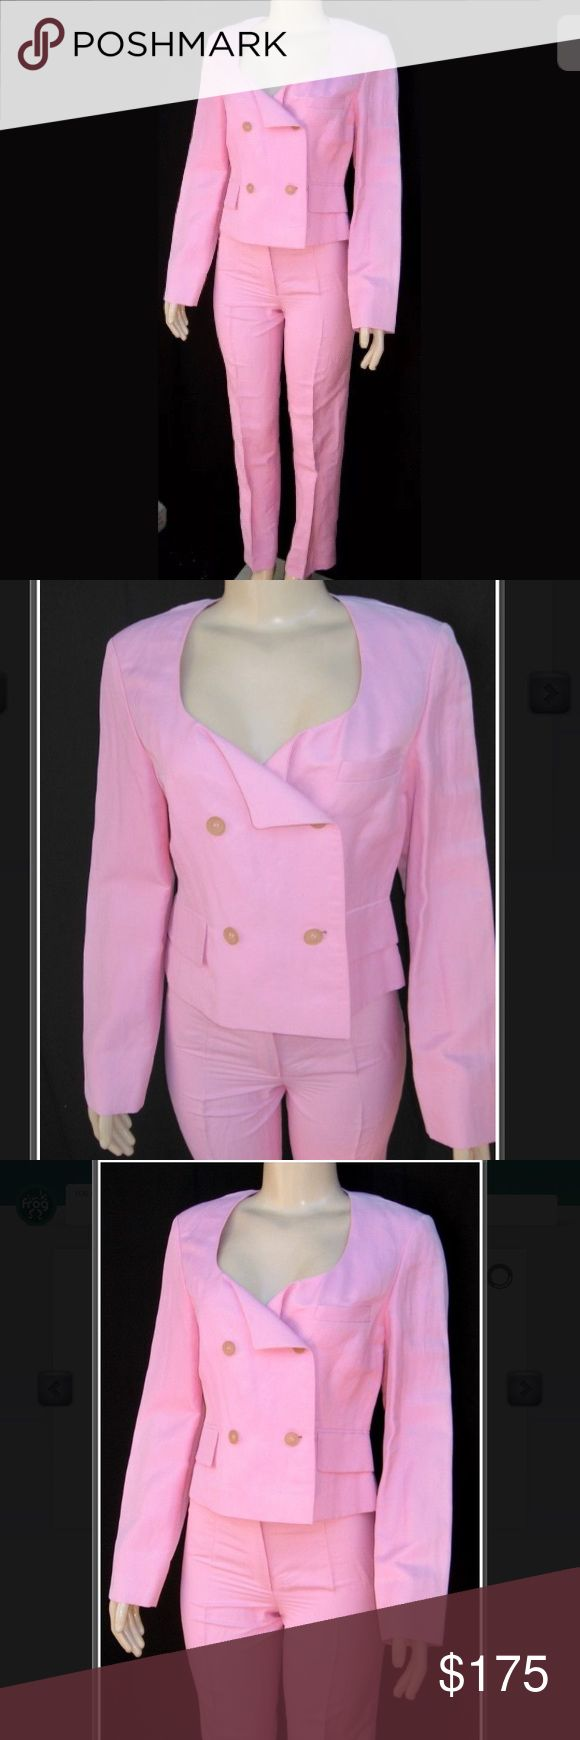 Jil Sander Pink Linen Suit Set JIL SANDER Pant Suit Outfit 4/38 jacket is 4 US / 38 EU and pant is 2 US / 36 EU  70% Linen and 30% Nylon  4 button double breasted front.  17 in across the shoulders  35 in across the chest  32 in across the waist. Total length is 21 in  Sleeves are 25 in  Waist: 27  Hips: 38 in  Inseam is 31 in 42 in total length from waist to bottom Comes w/ bag w/ extra button.  faded area along the shoulder seams, see pic. This suit is bnwt with defect. This suit retails…